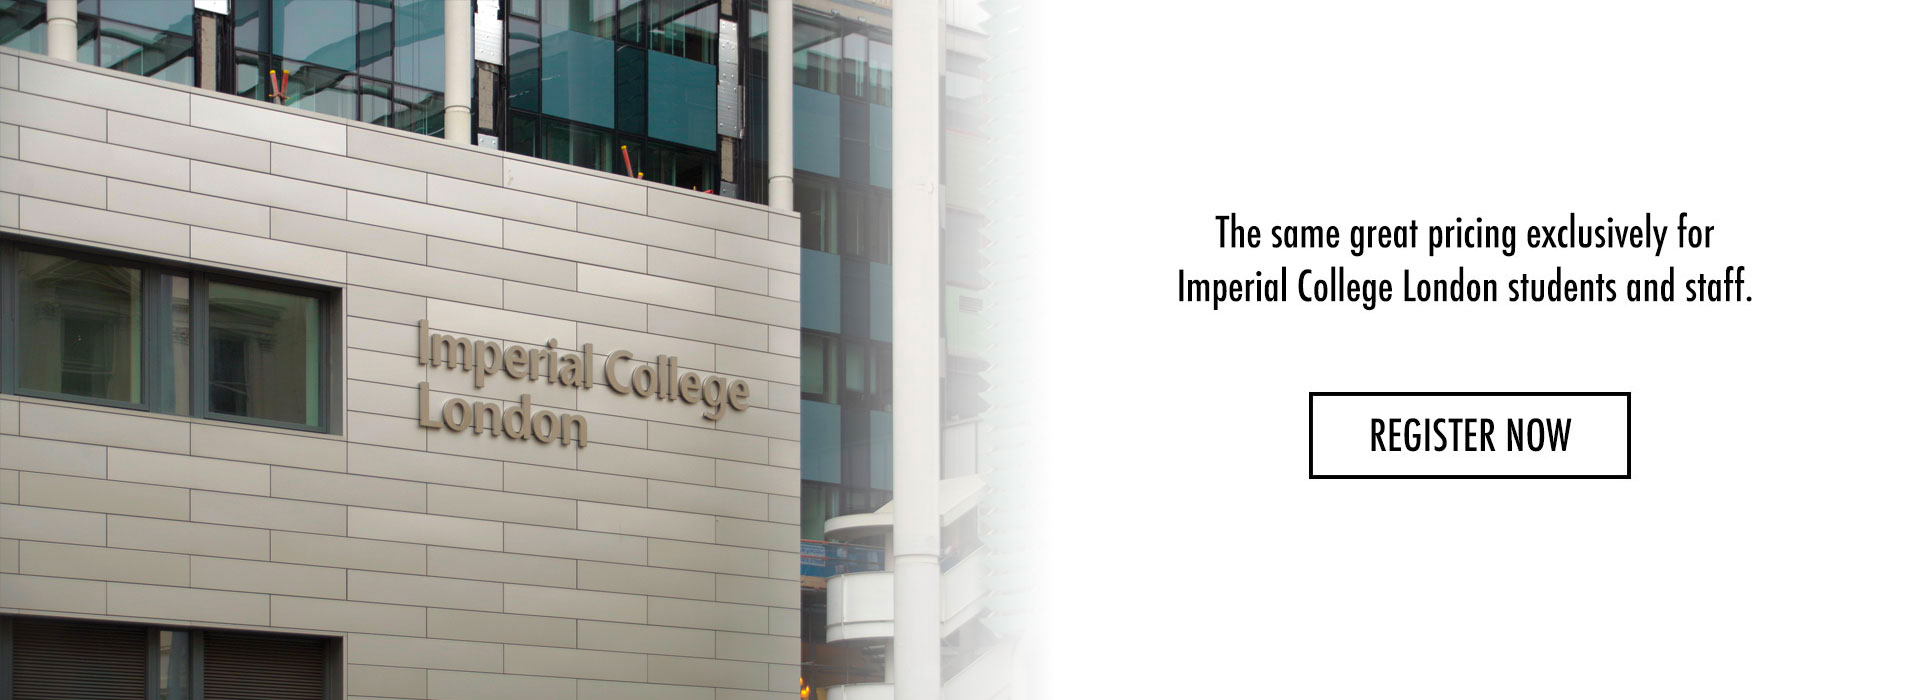 Imperial College London Register